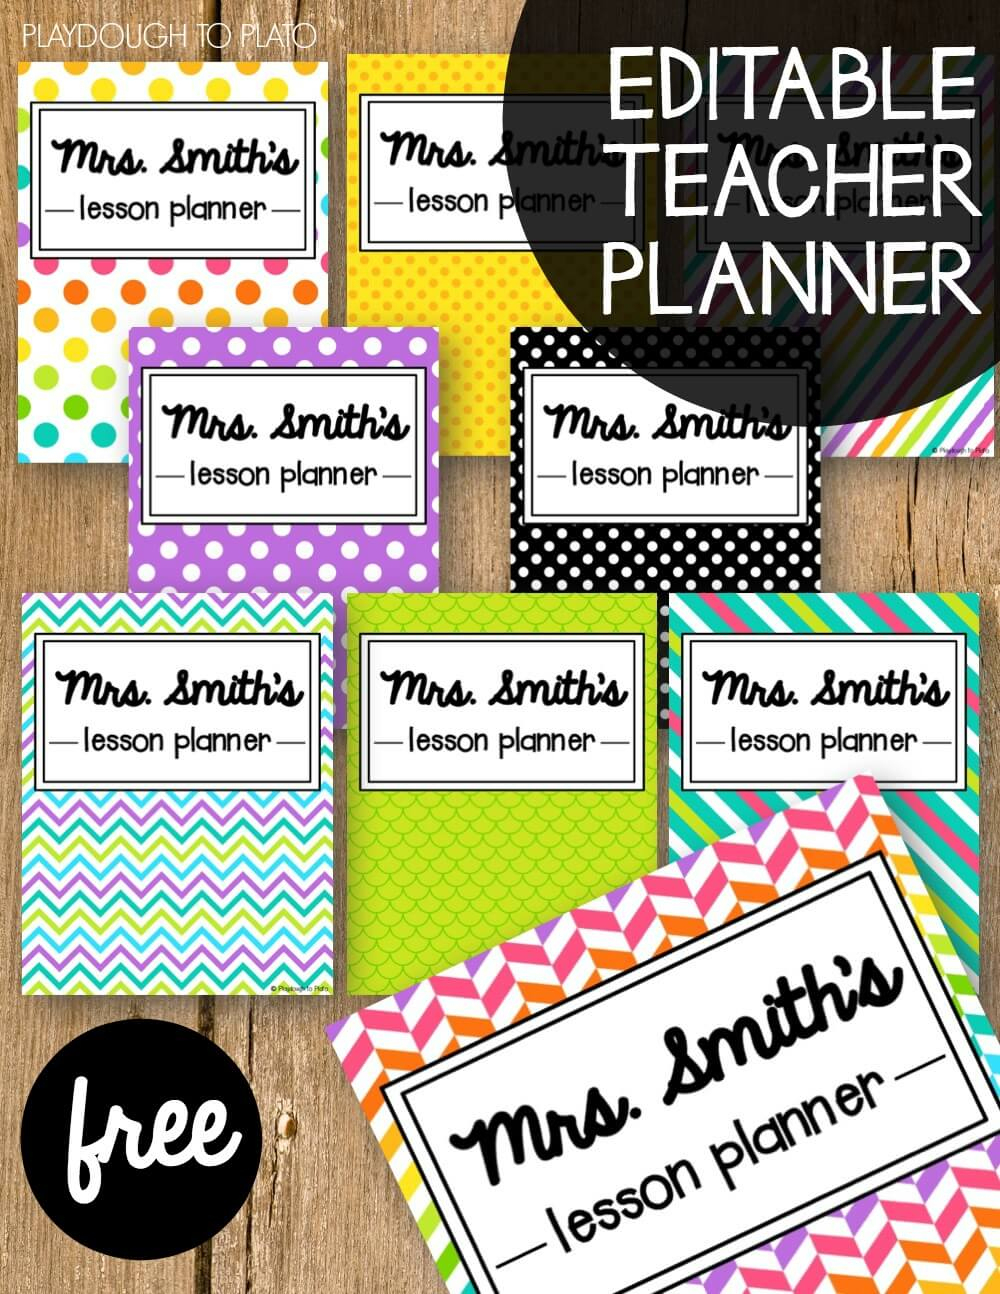 Free Teacher Planner - Playdough To Plato - Free Printable Teacher Planner Pages